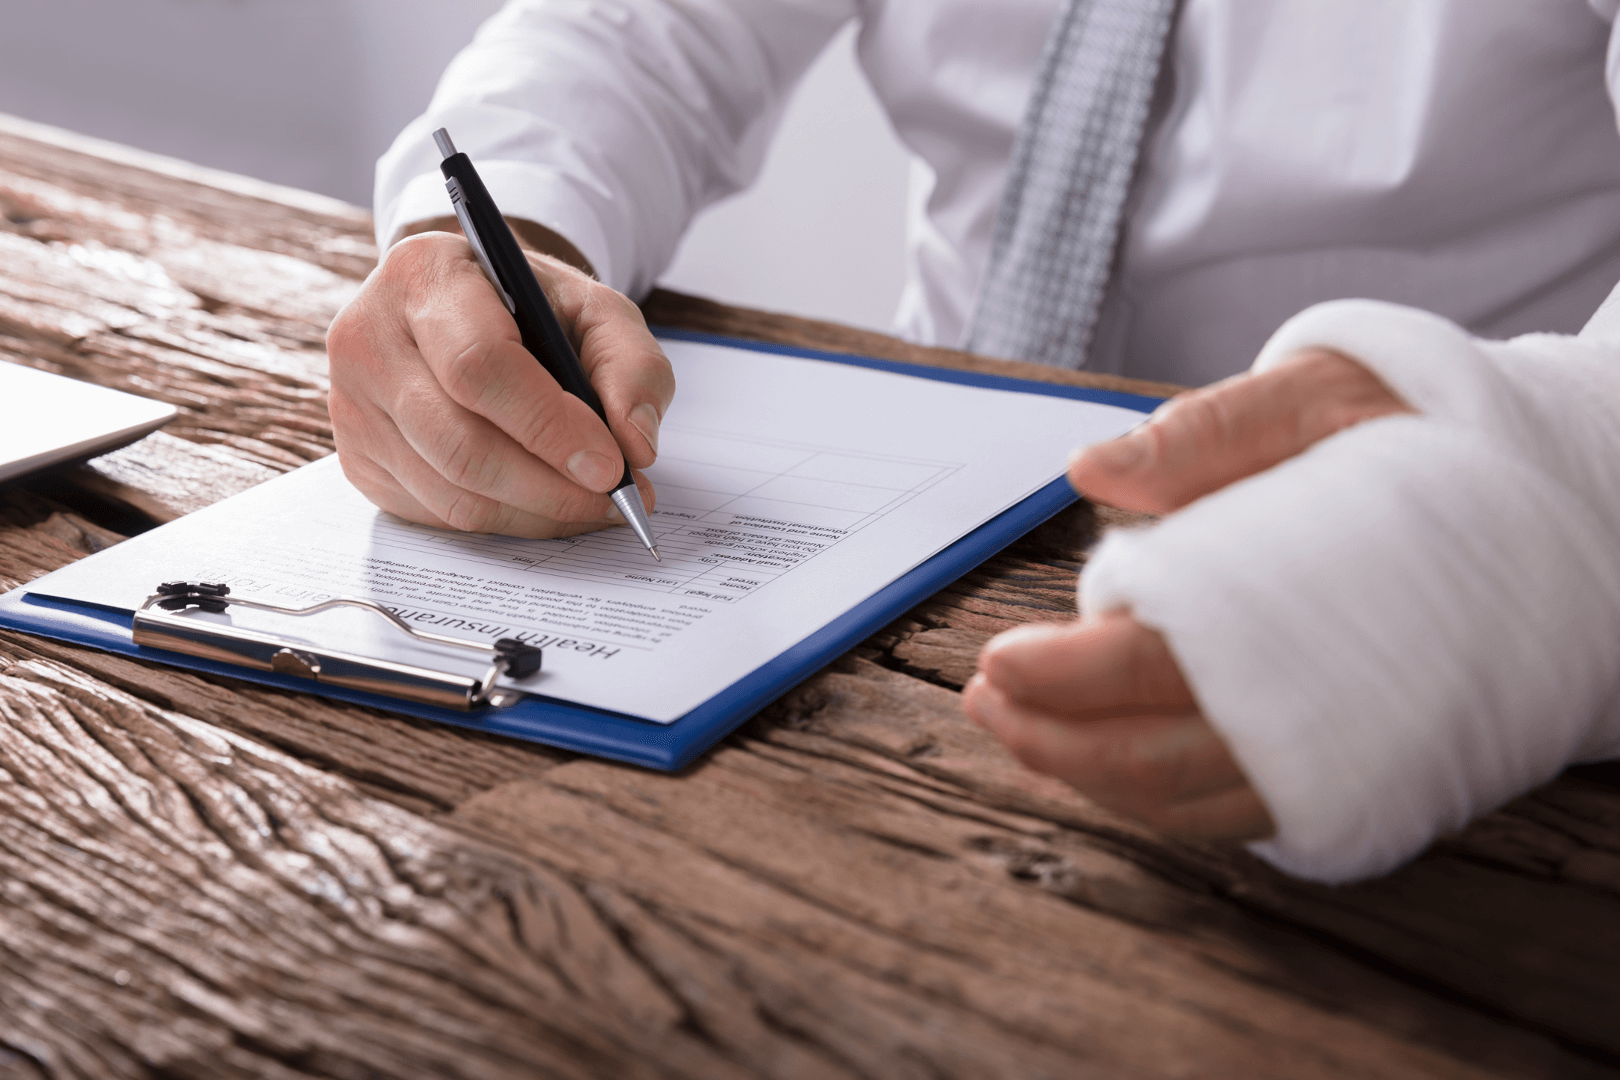 Are you looking for accident solicitors in Liverpool to help you make a claim? Here's our top 5 tips to getting the most compensation